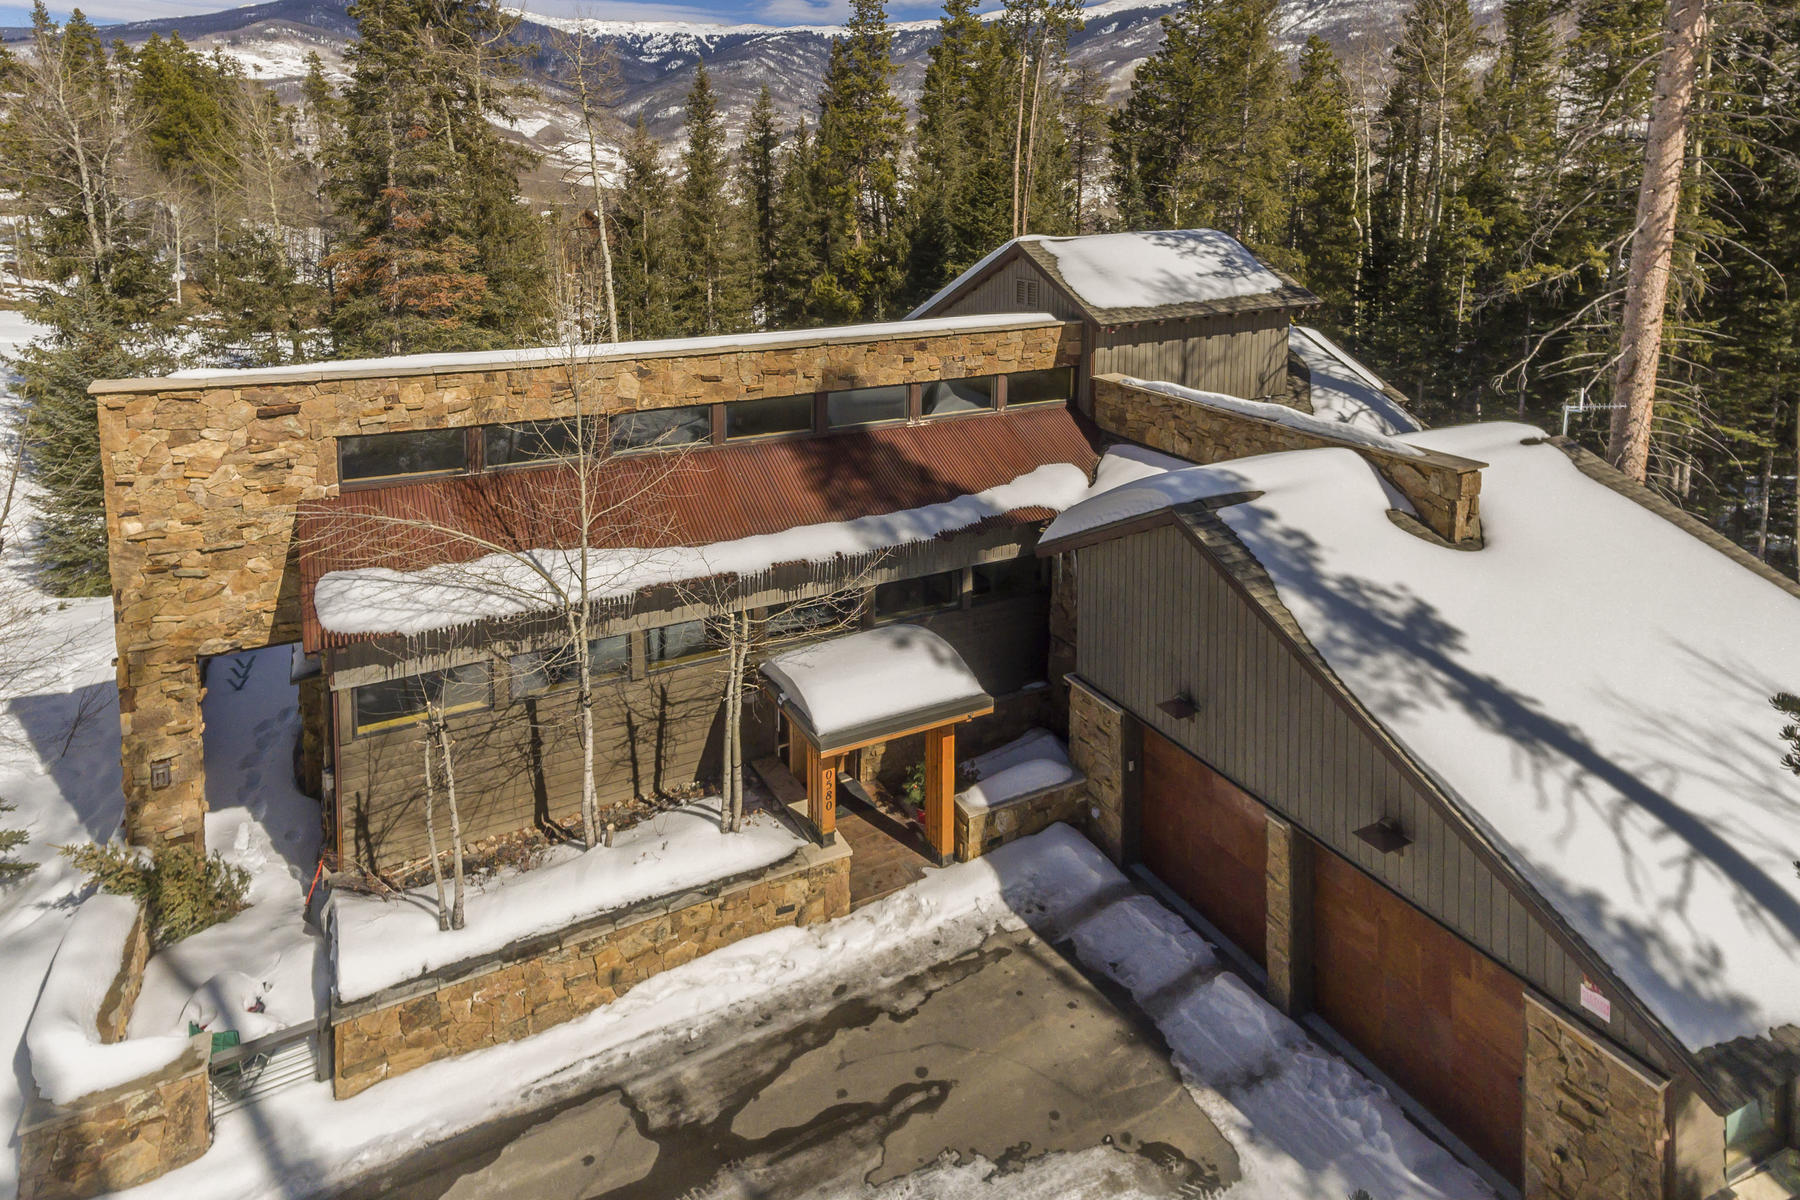 Single Family Homes for Sale at Eagles Nest Golf Course 580 Two Cabins Drive Silverthorne, Colorado 80498 United States